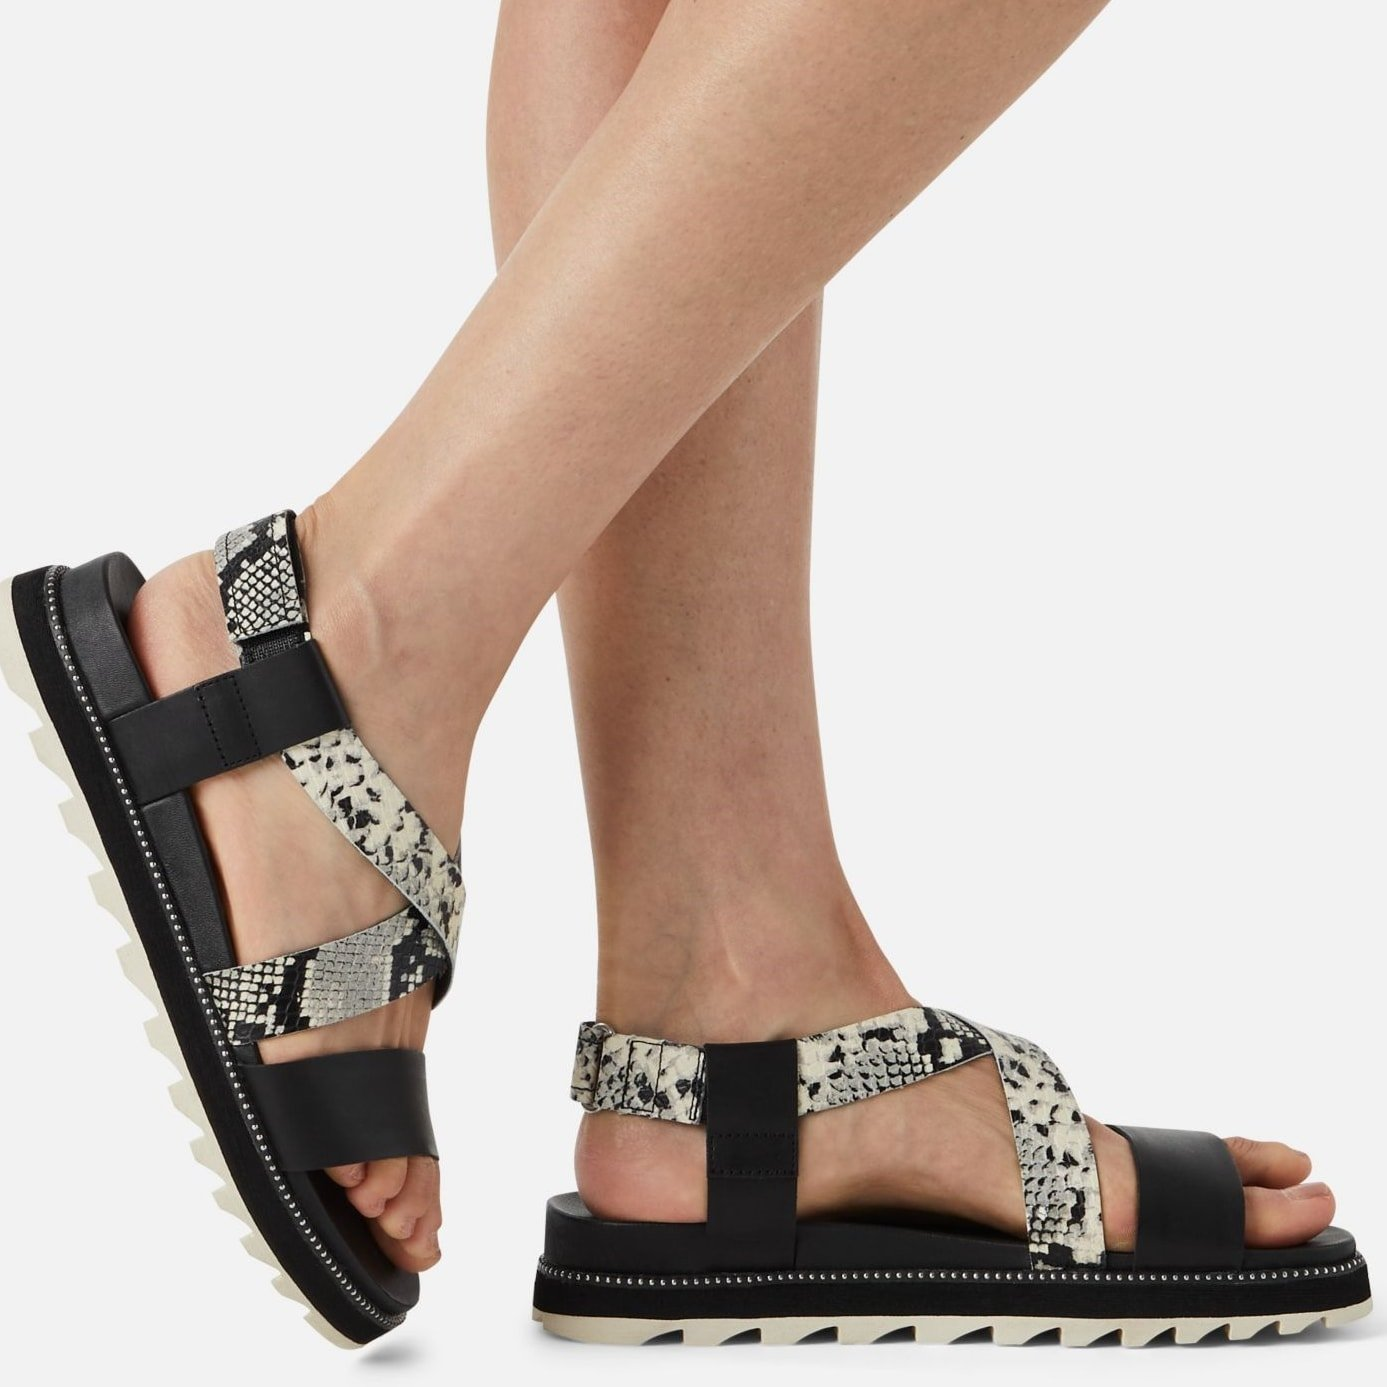 Monochrome straps cross atop a breezy sandal grounded by a sporty lugged sole that helps ensure sure-footed steps on all surfaces